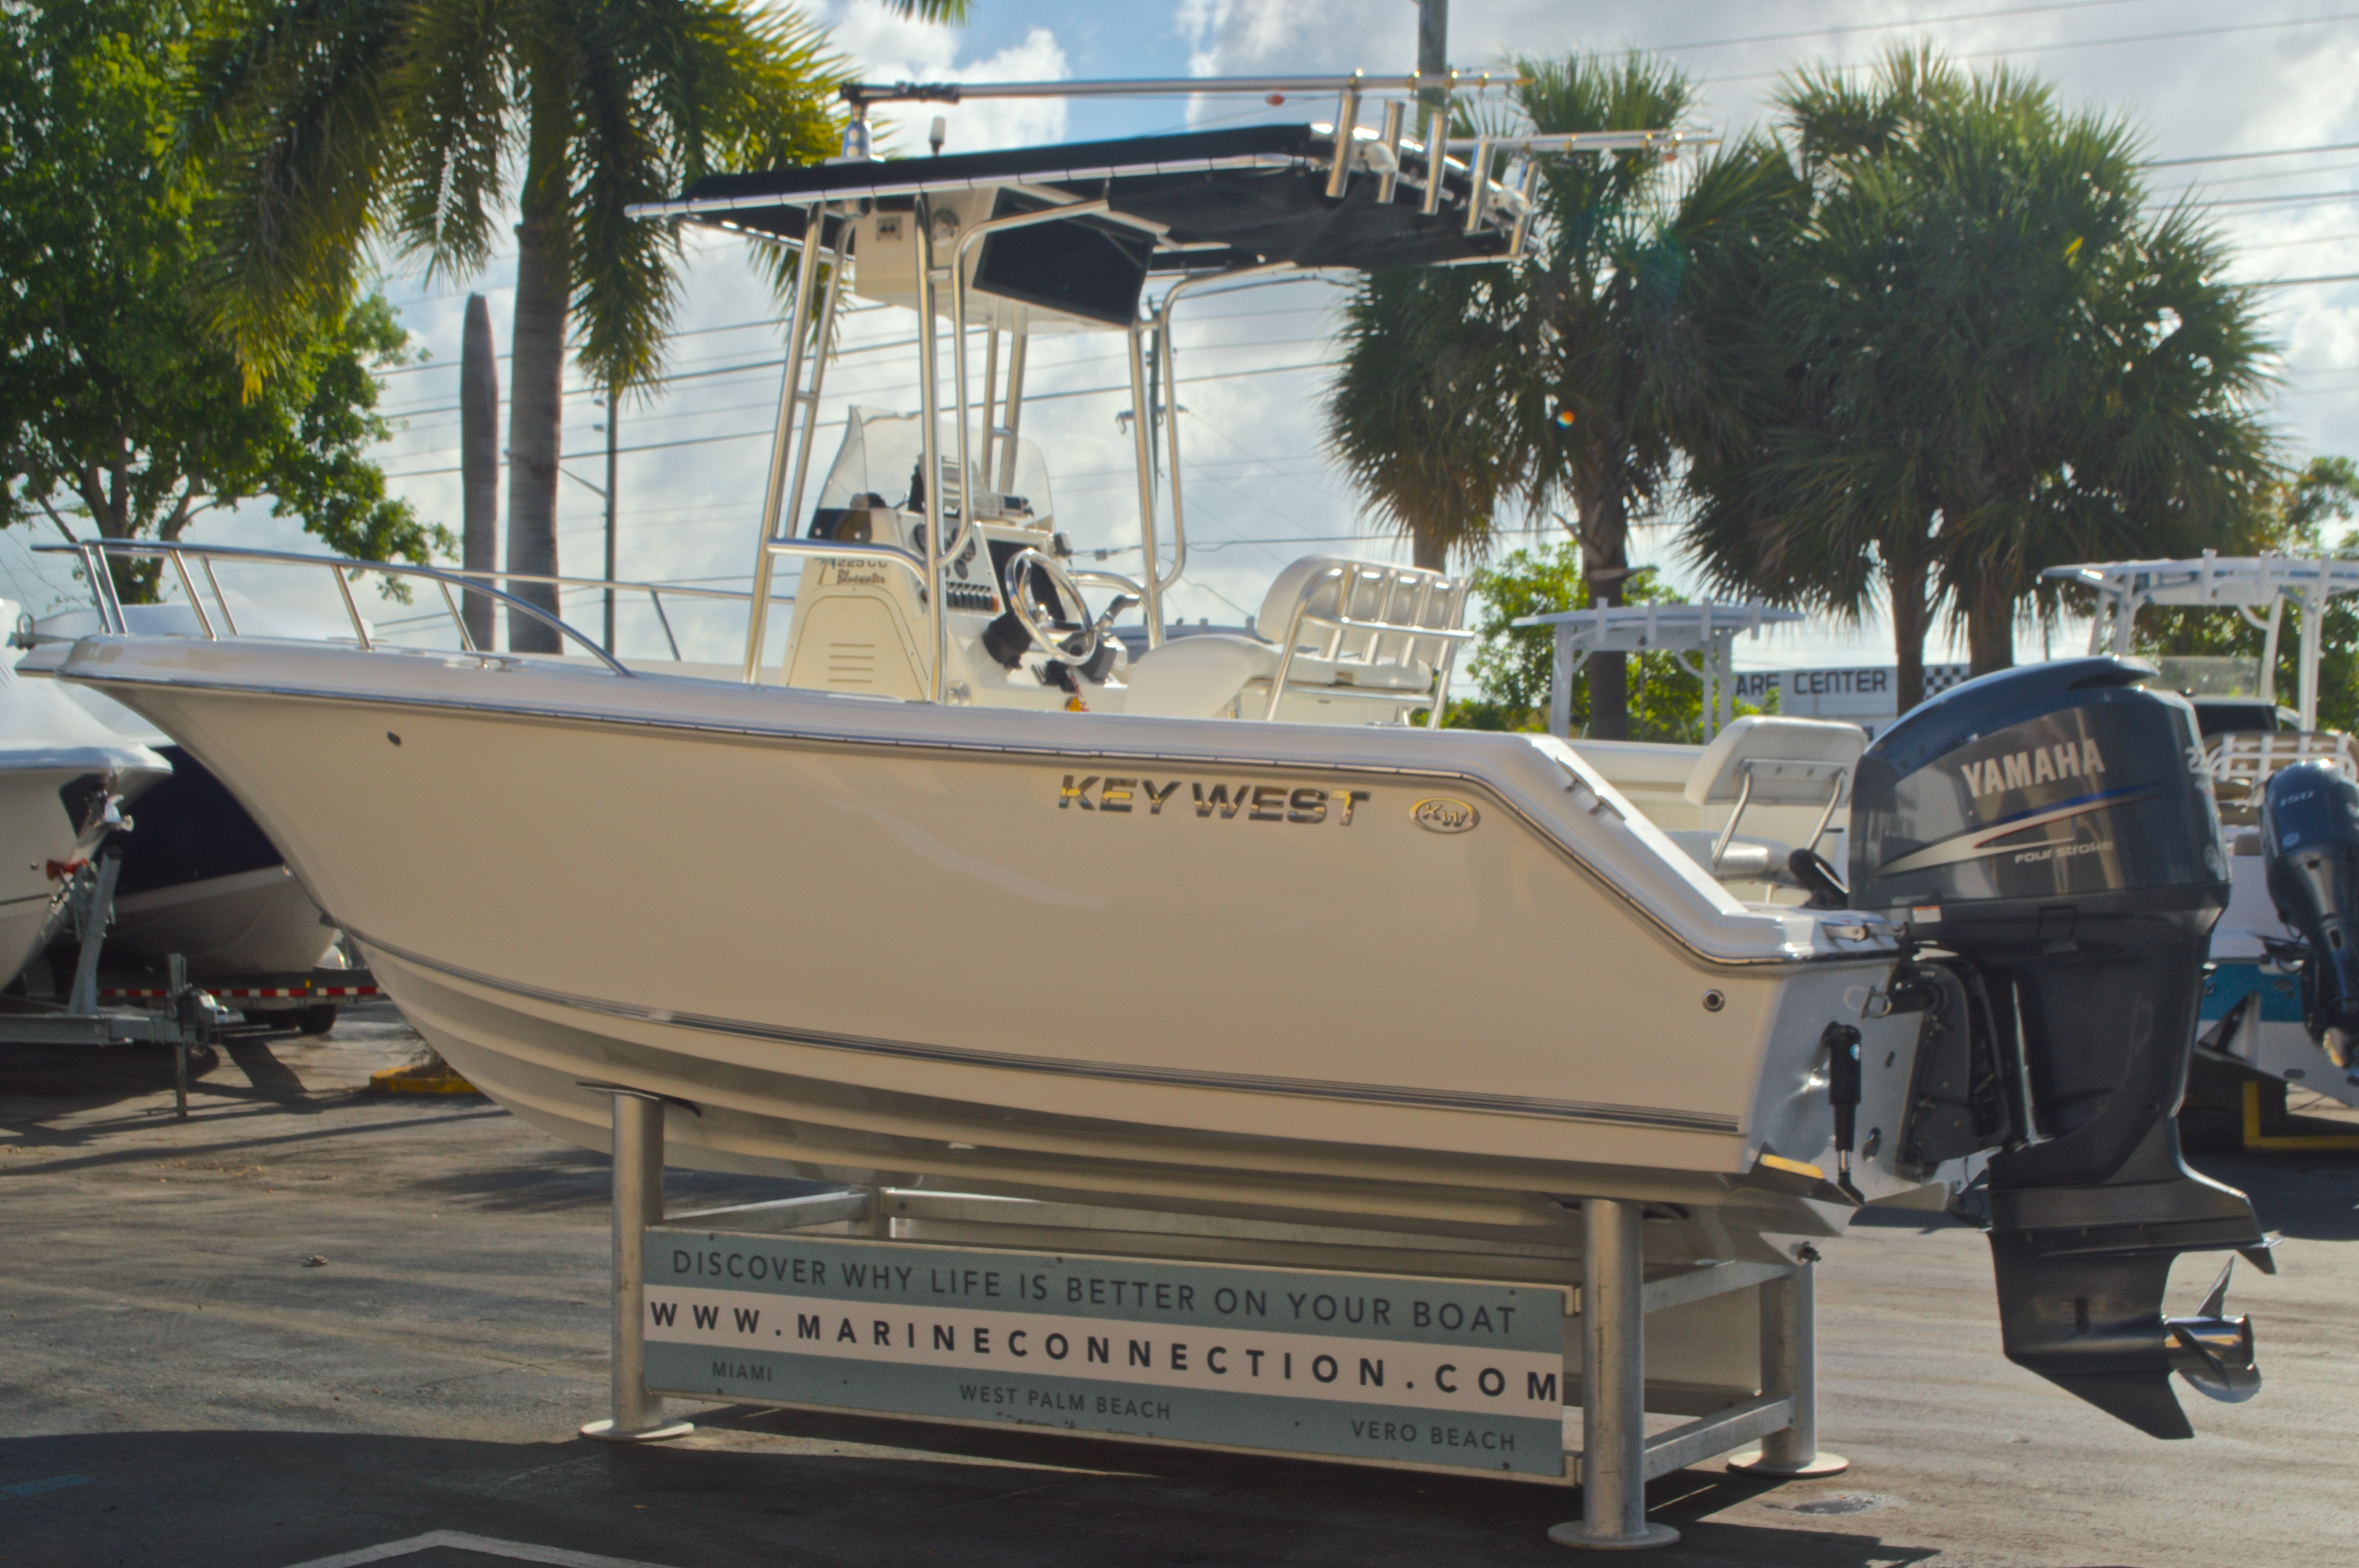 Thumbnail 6 for Used 2009 Key West 225 Center Console boat for sale in West Palm Beach, FL